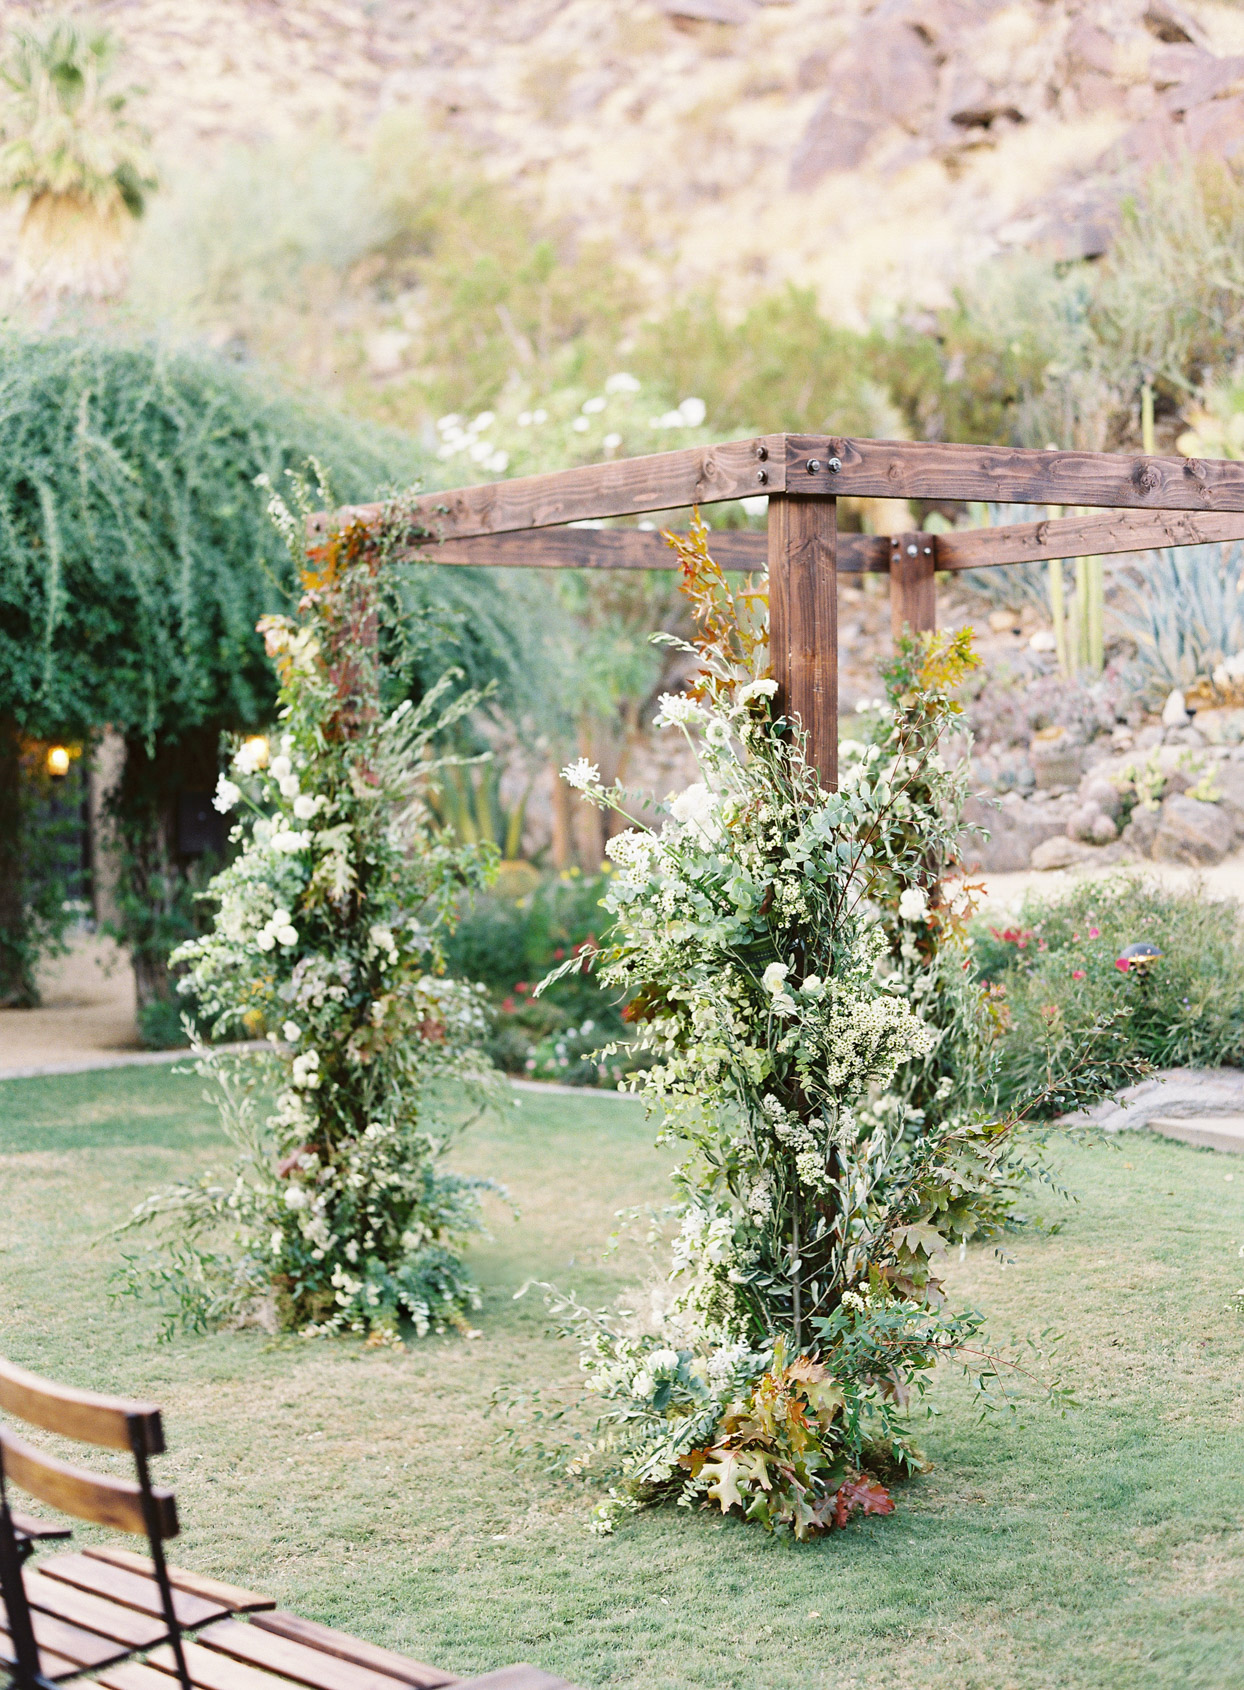 wooden wedding ceremony arch with floral decor